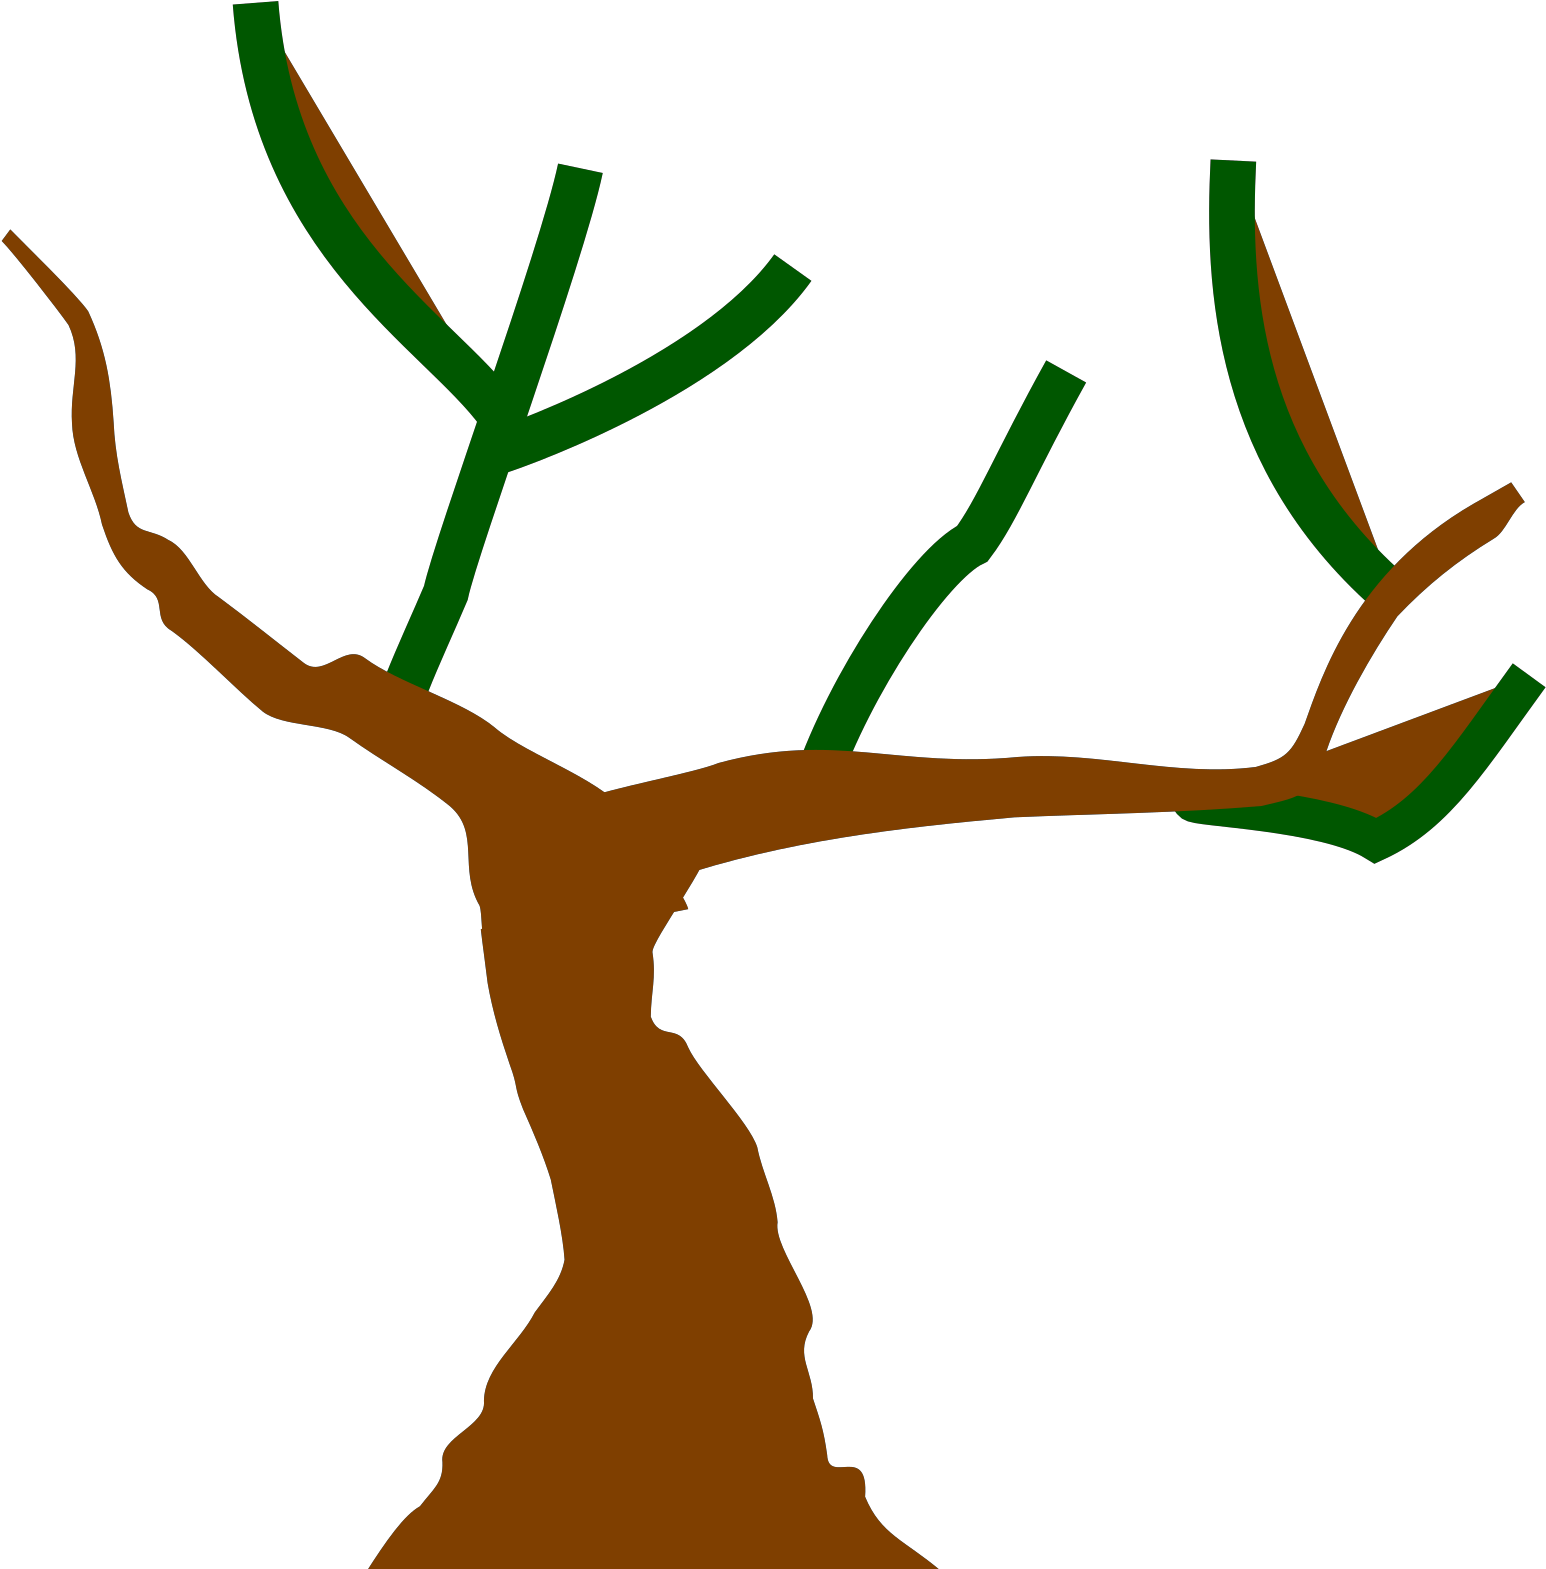 Clipart Tree Trunk - Png Download - Full Size Clipart ...